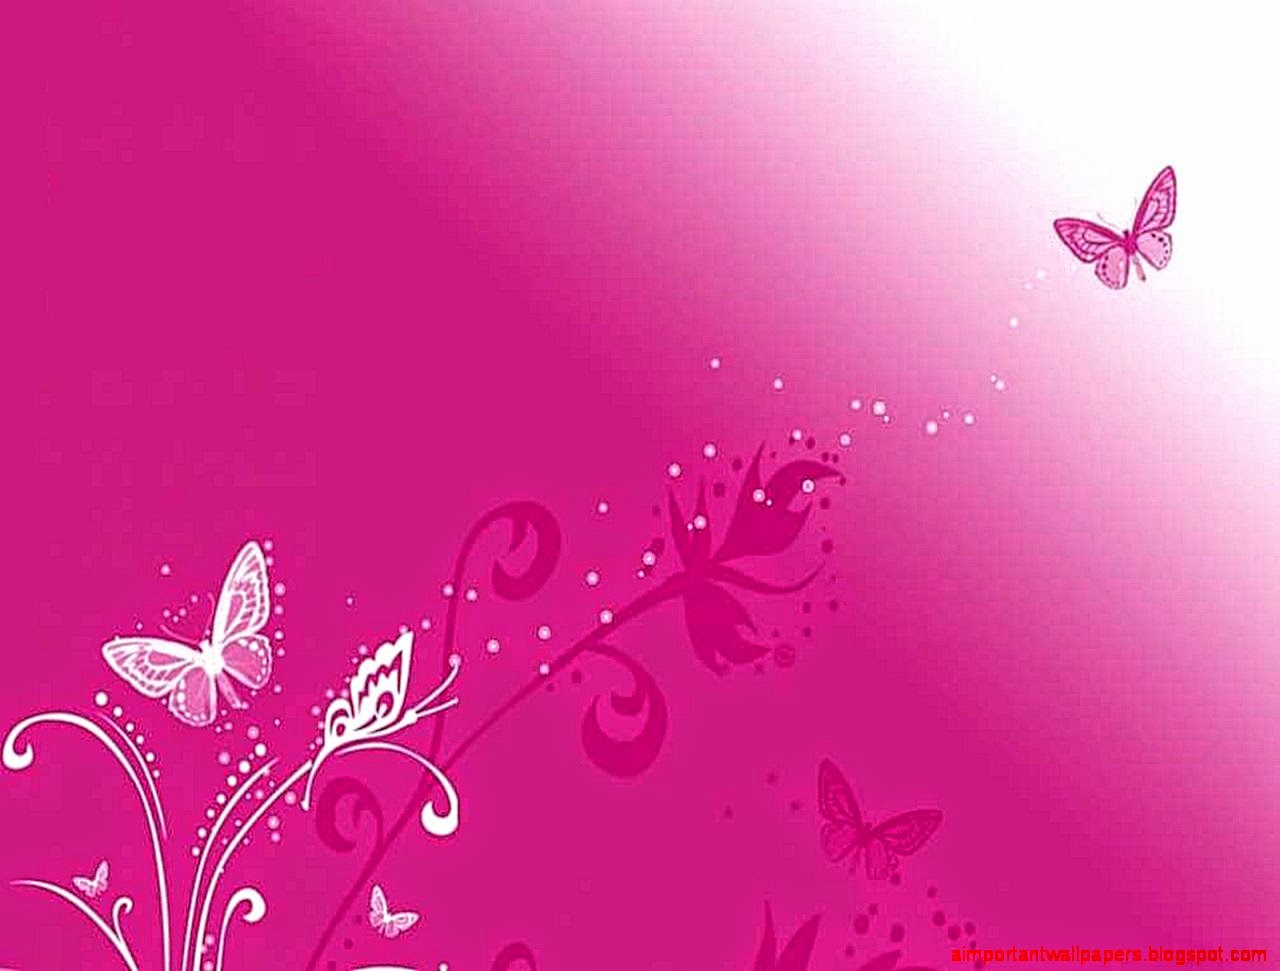 Pink butterfly vector background hd wallpapers pink butterfly vector - Filename Pink Butterfly Vector Background Hd Wallpaper Vector Amp Designs Jpg Dimension 1280x971 Pixels Size 76 05 Kb View Original Size